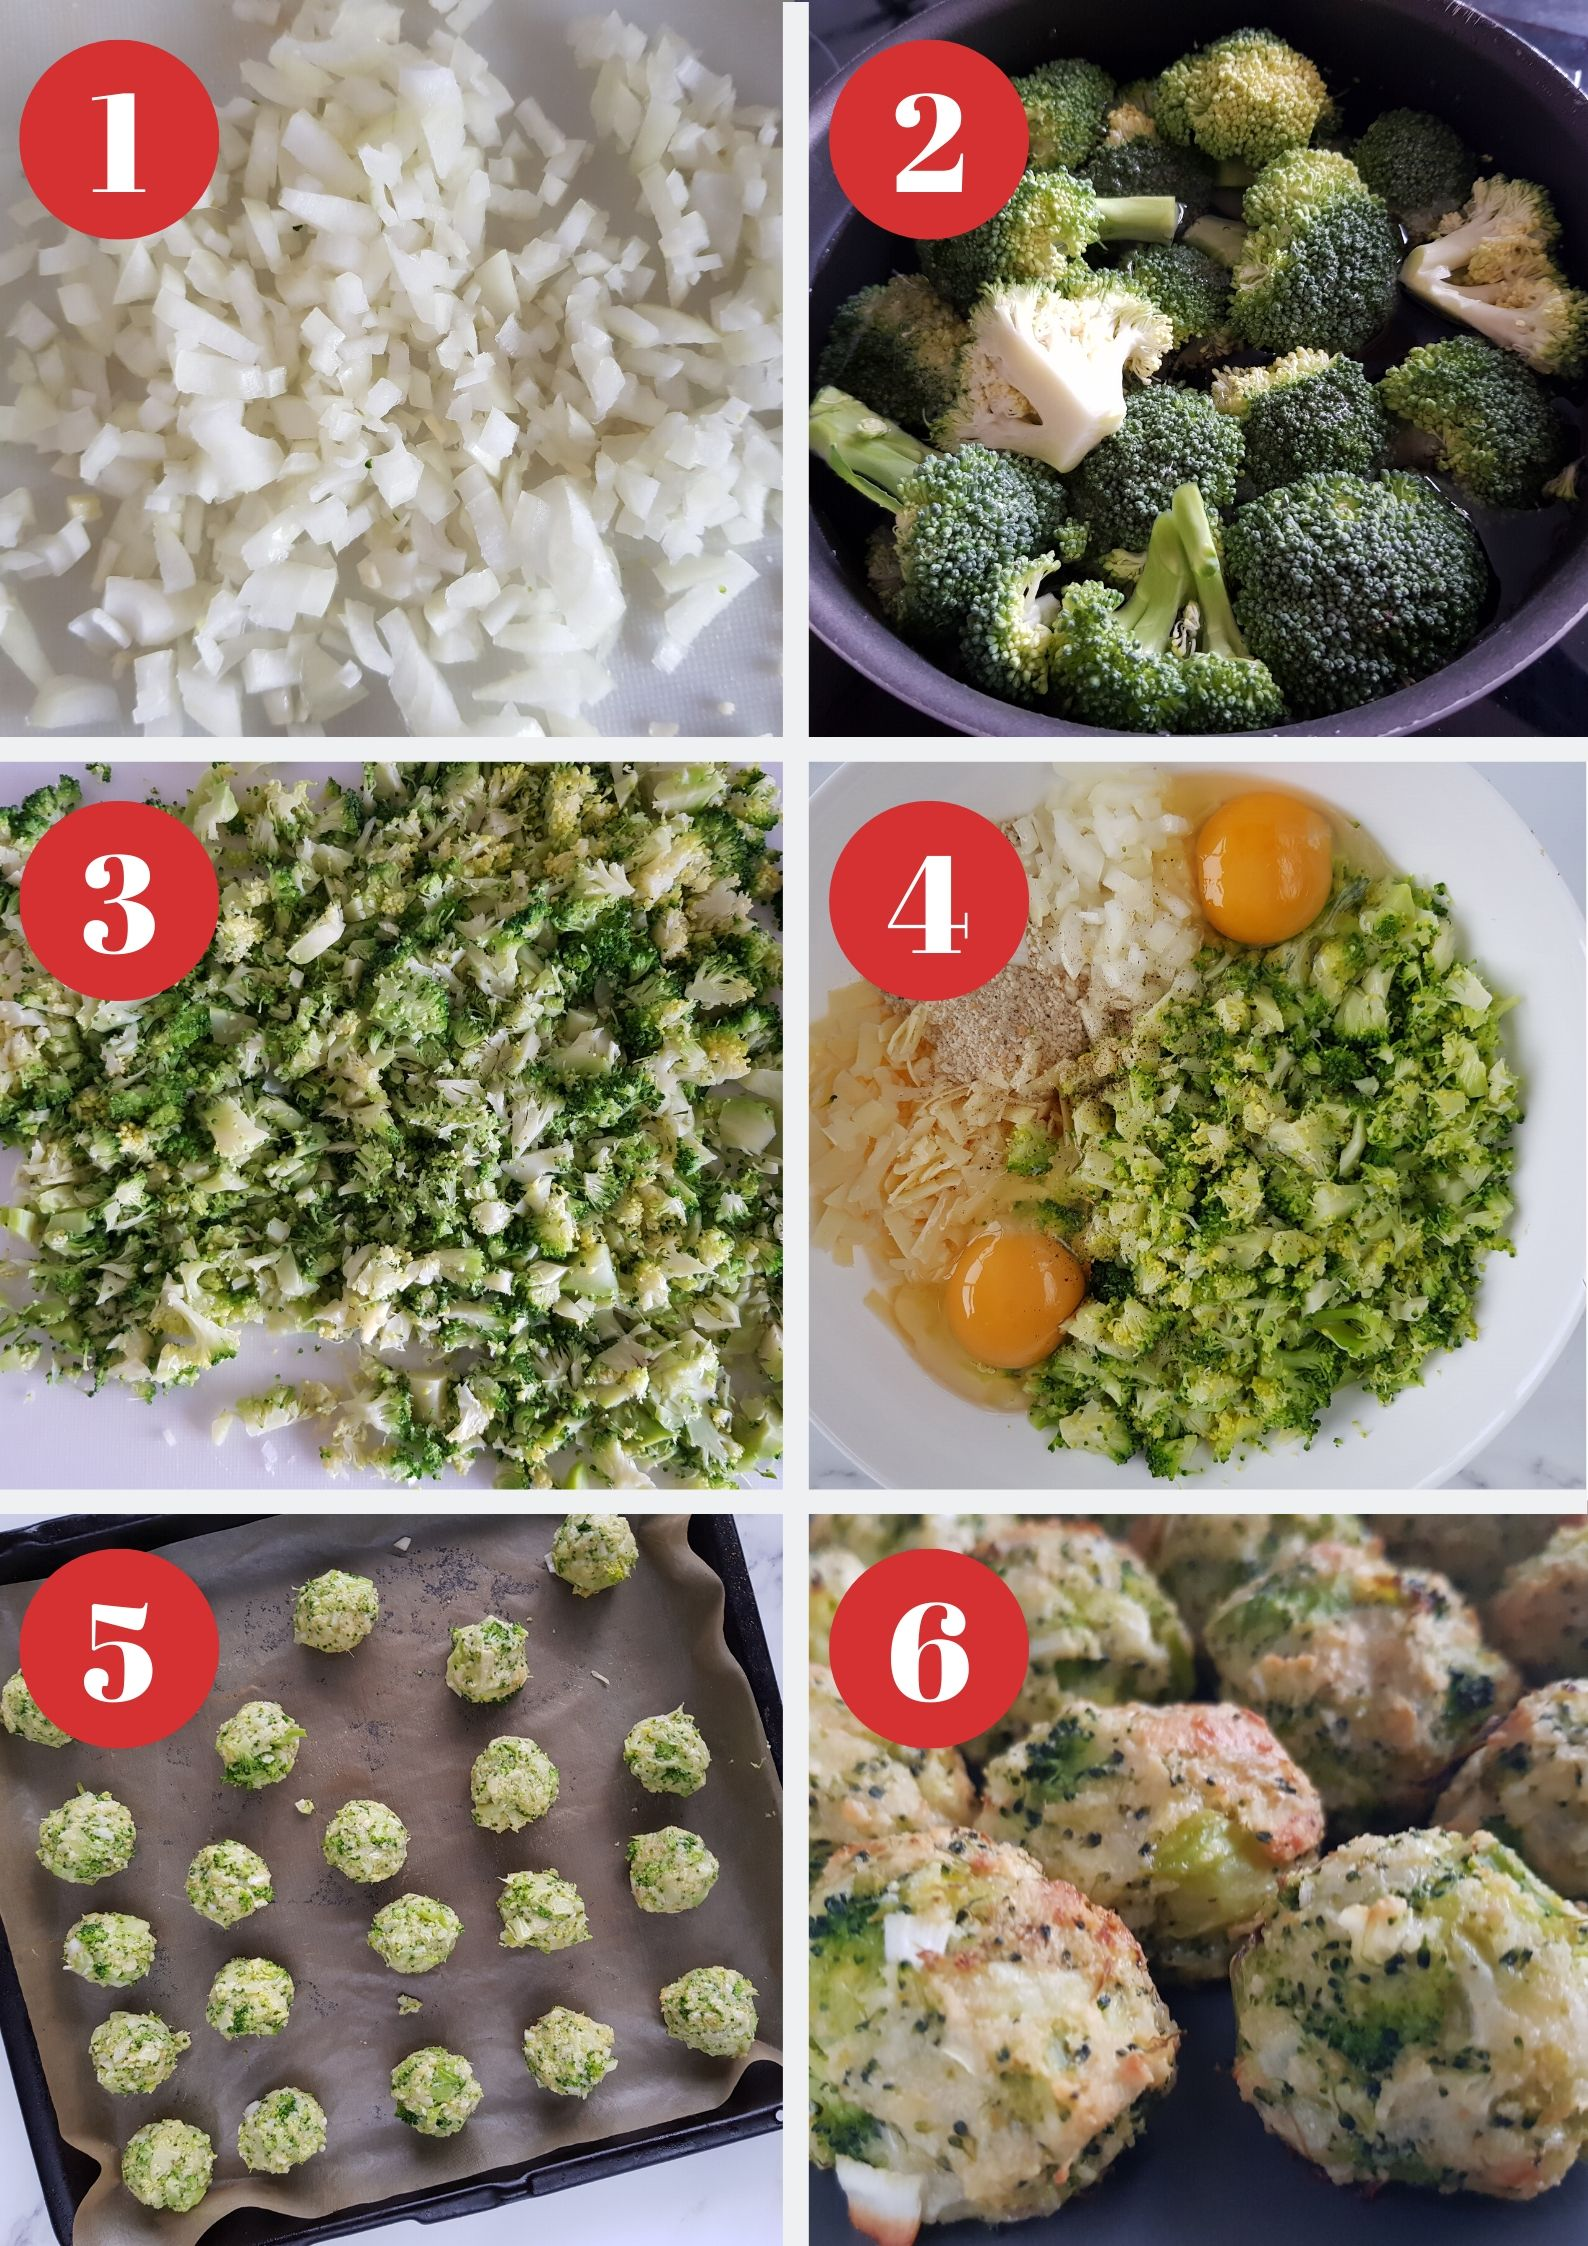 How to Make Broccoli and Cheese Balls